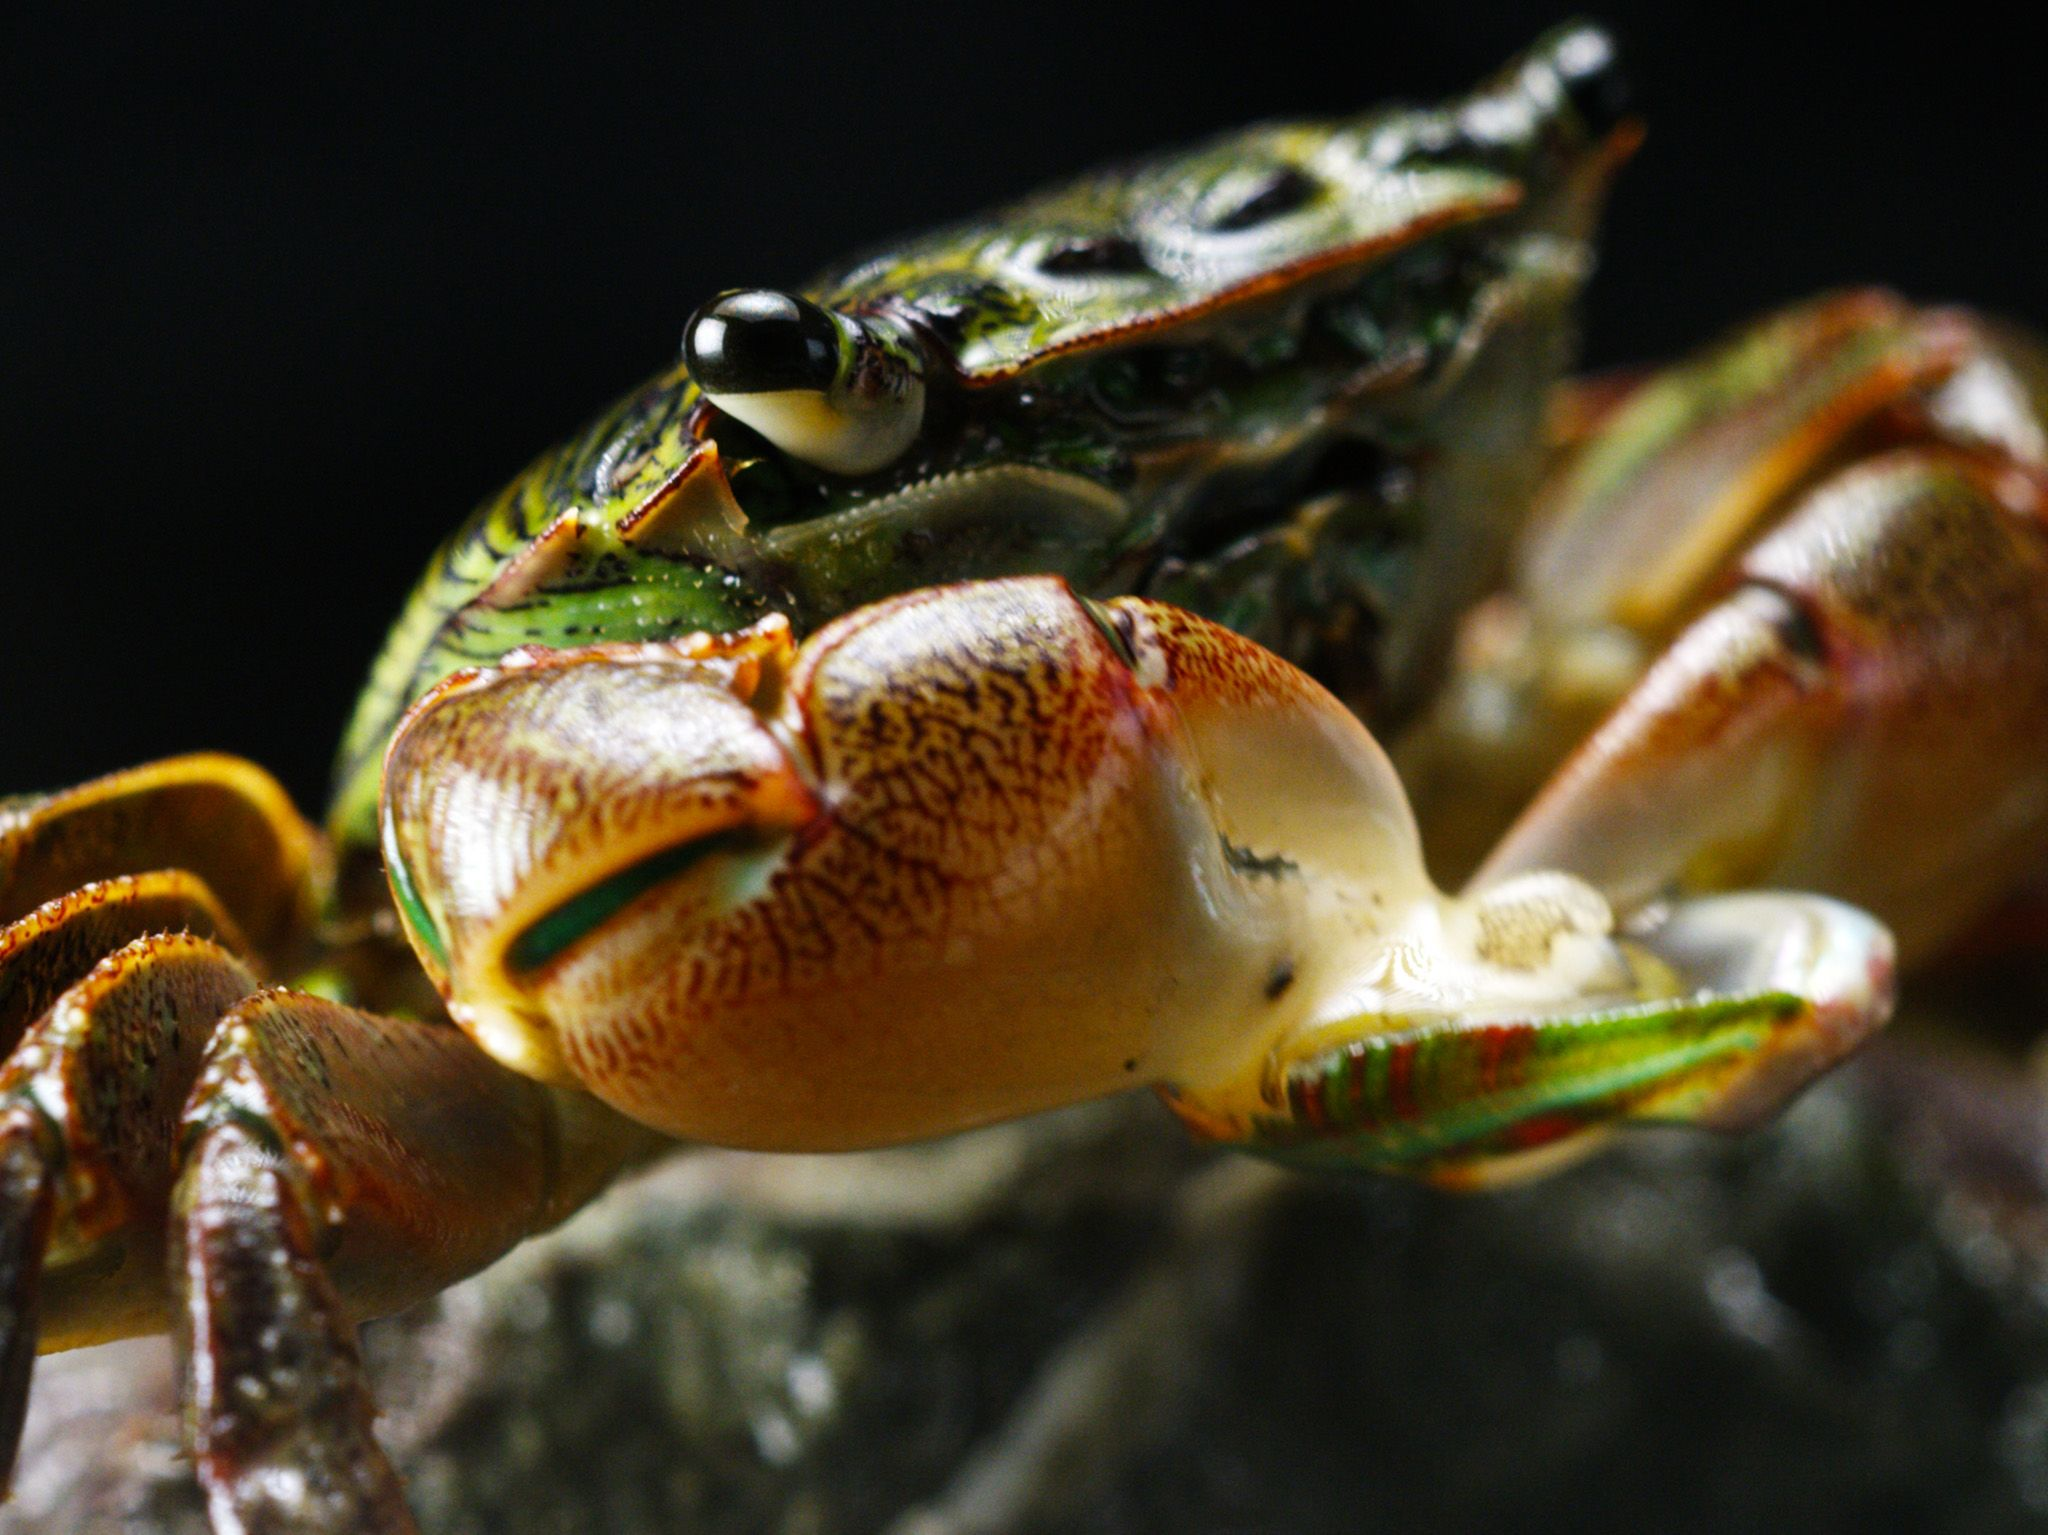 Elkhorn Slough, CA:  Lined Shore Crab devouring Abalone.  This image is from America's Wild... [Photo of the day - April 2020]